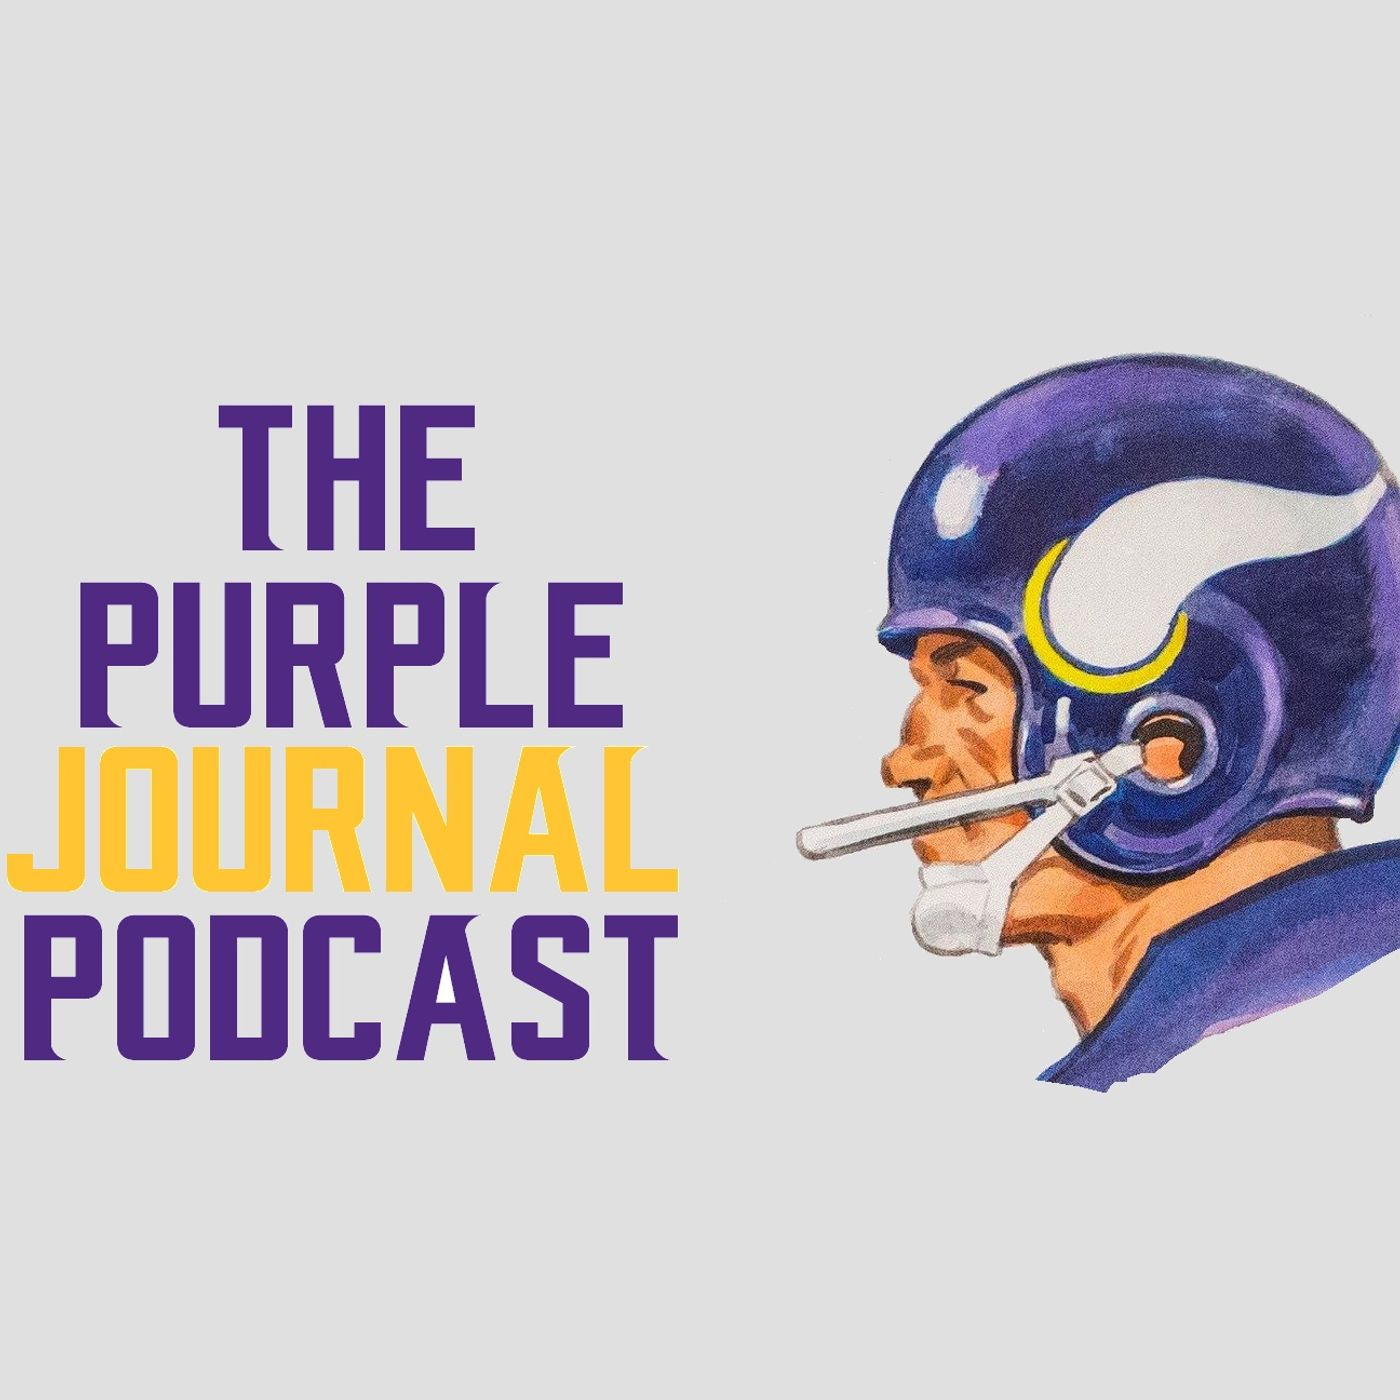 The purpleJOURNAL Podcast - OTA's Week Three Edition [Holton Hill, Laquon Treadwell, Dalvin Cook and Much, Much More!]